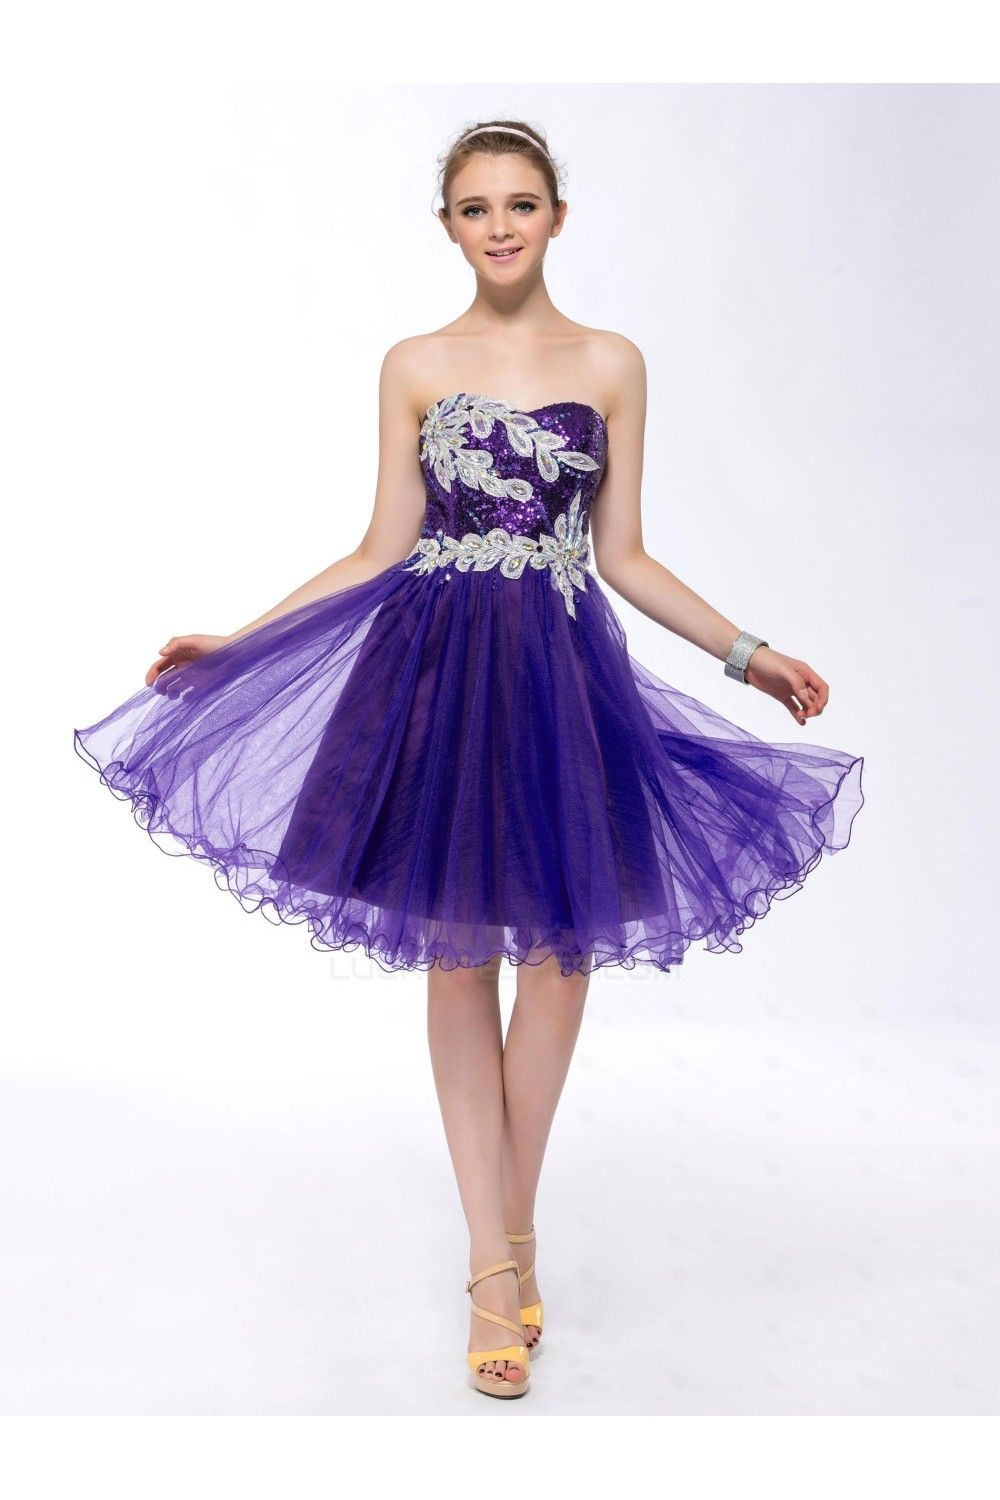 Aline strapless short purple sequin prom evening formal party